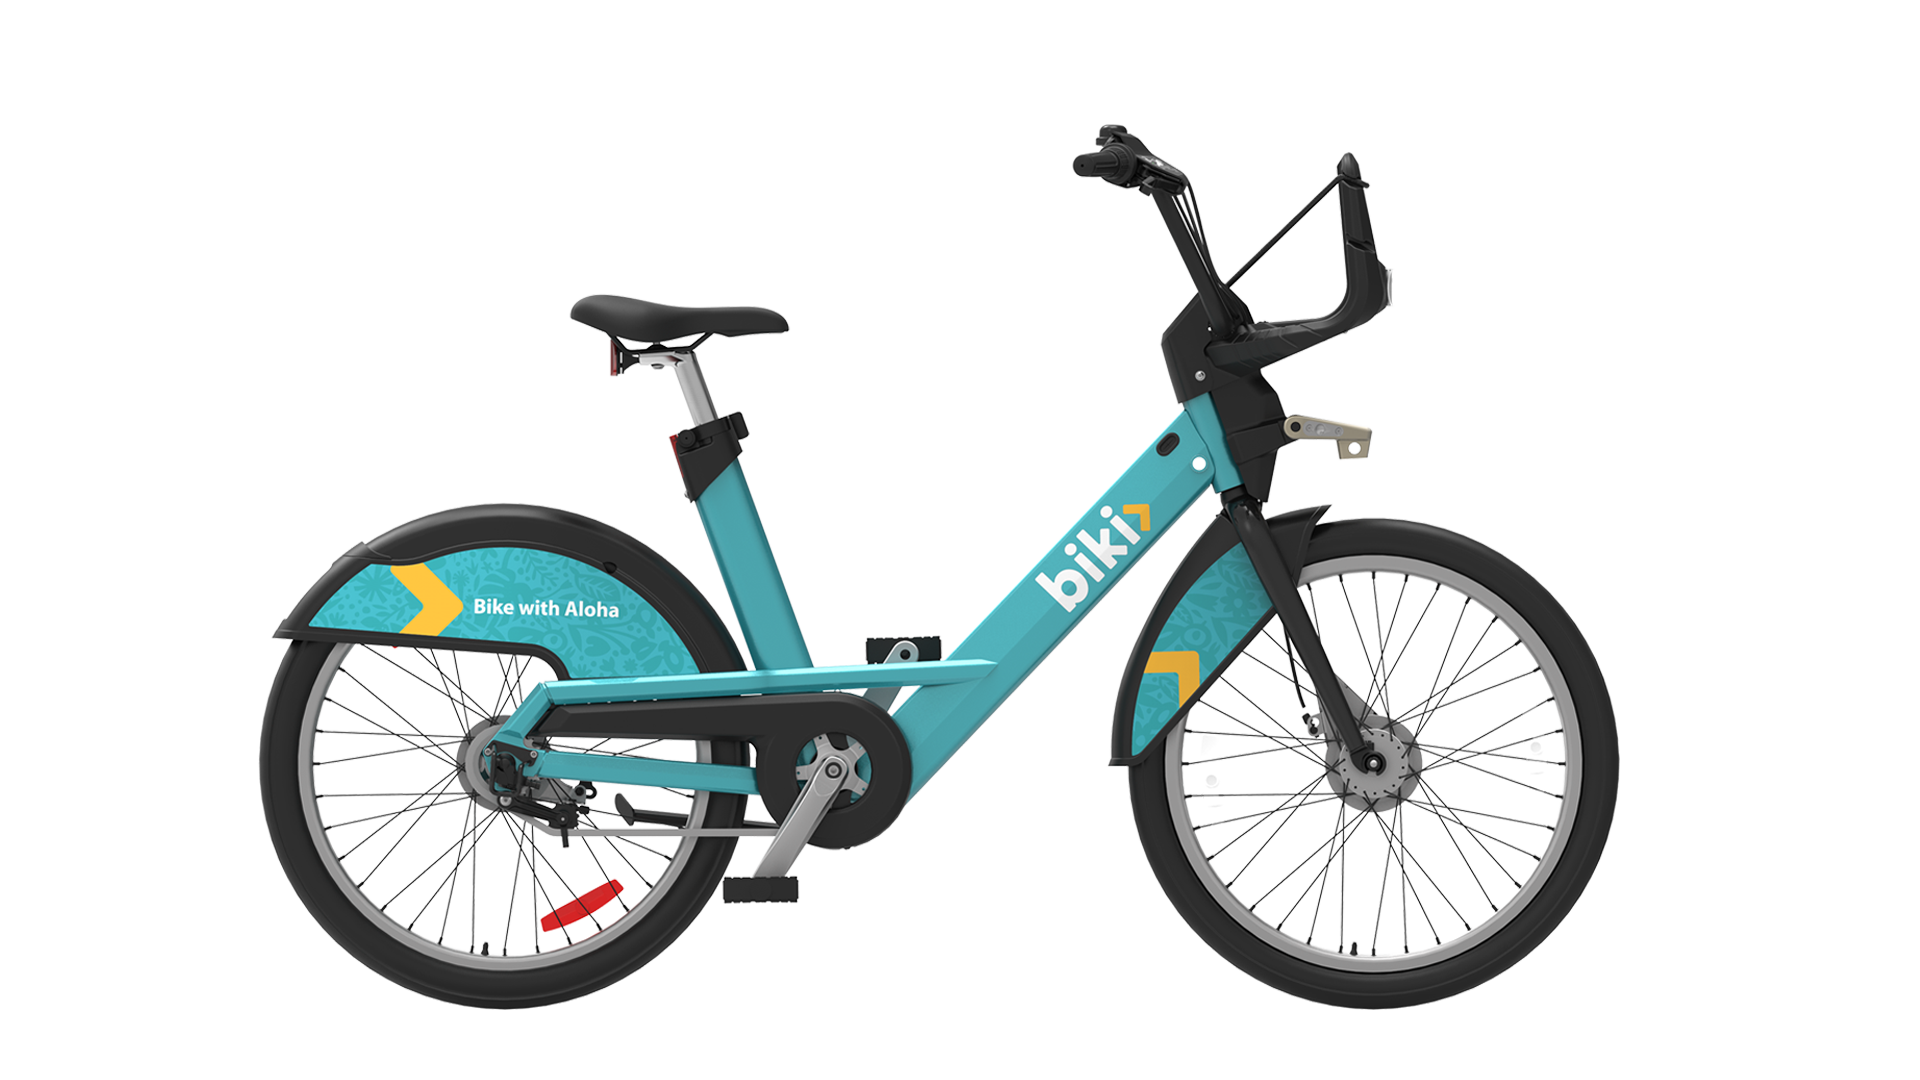 Meet the bike - Biki | Biki